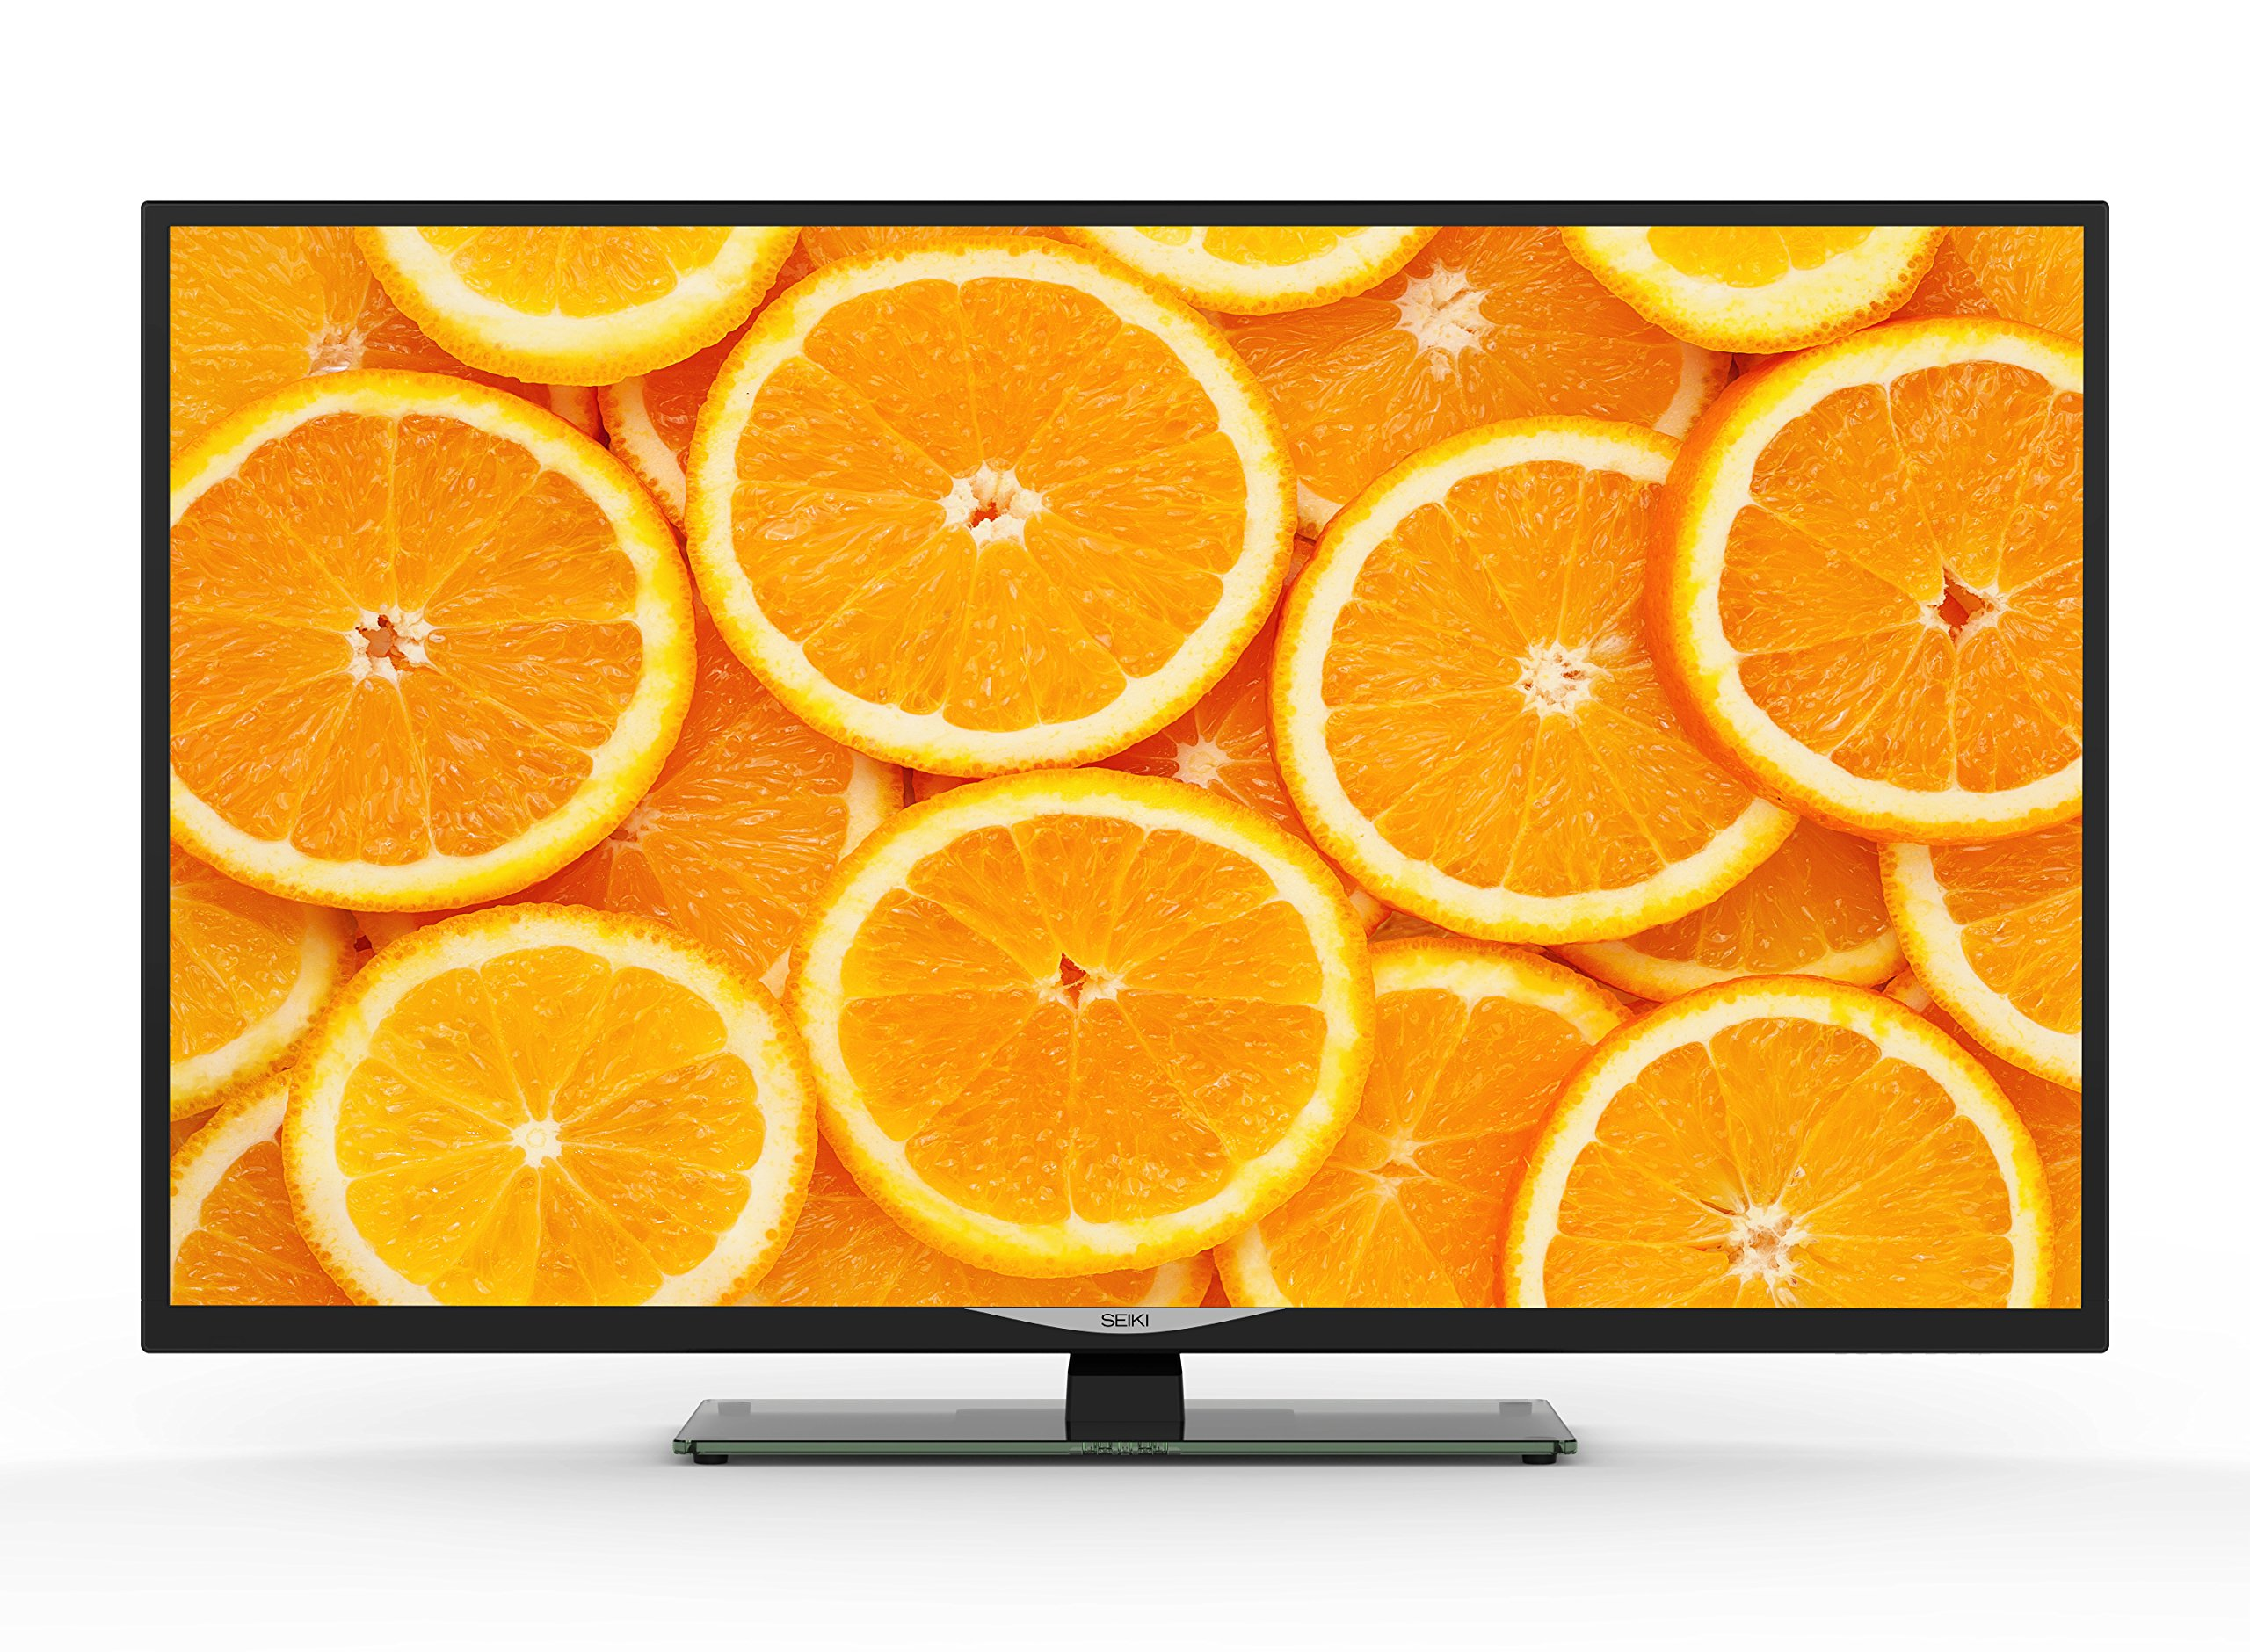 LED TV: Seiki SE50FY35 50-Inch 1080p 1080p